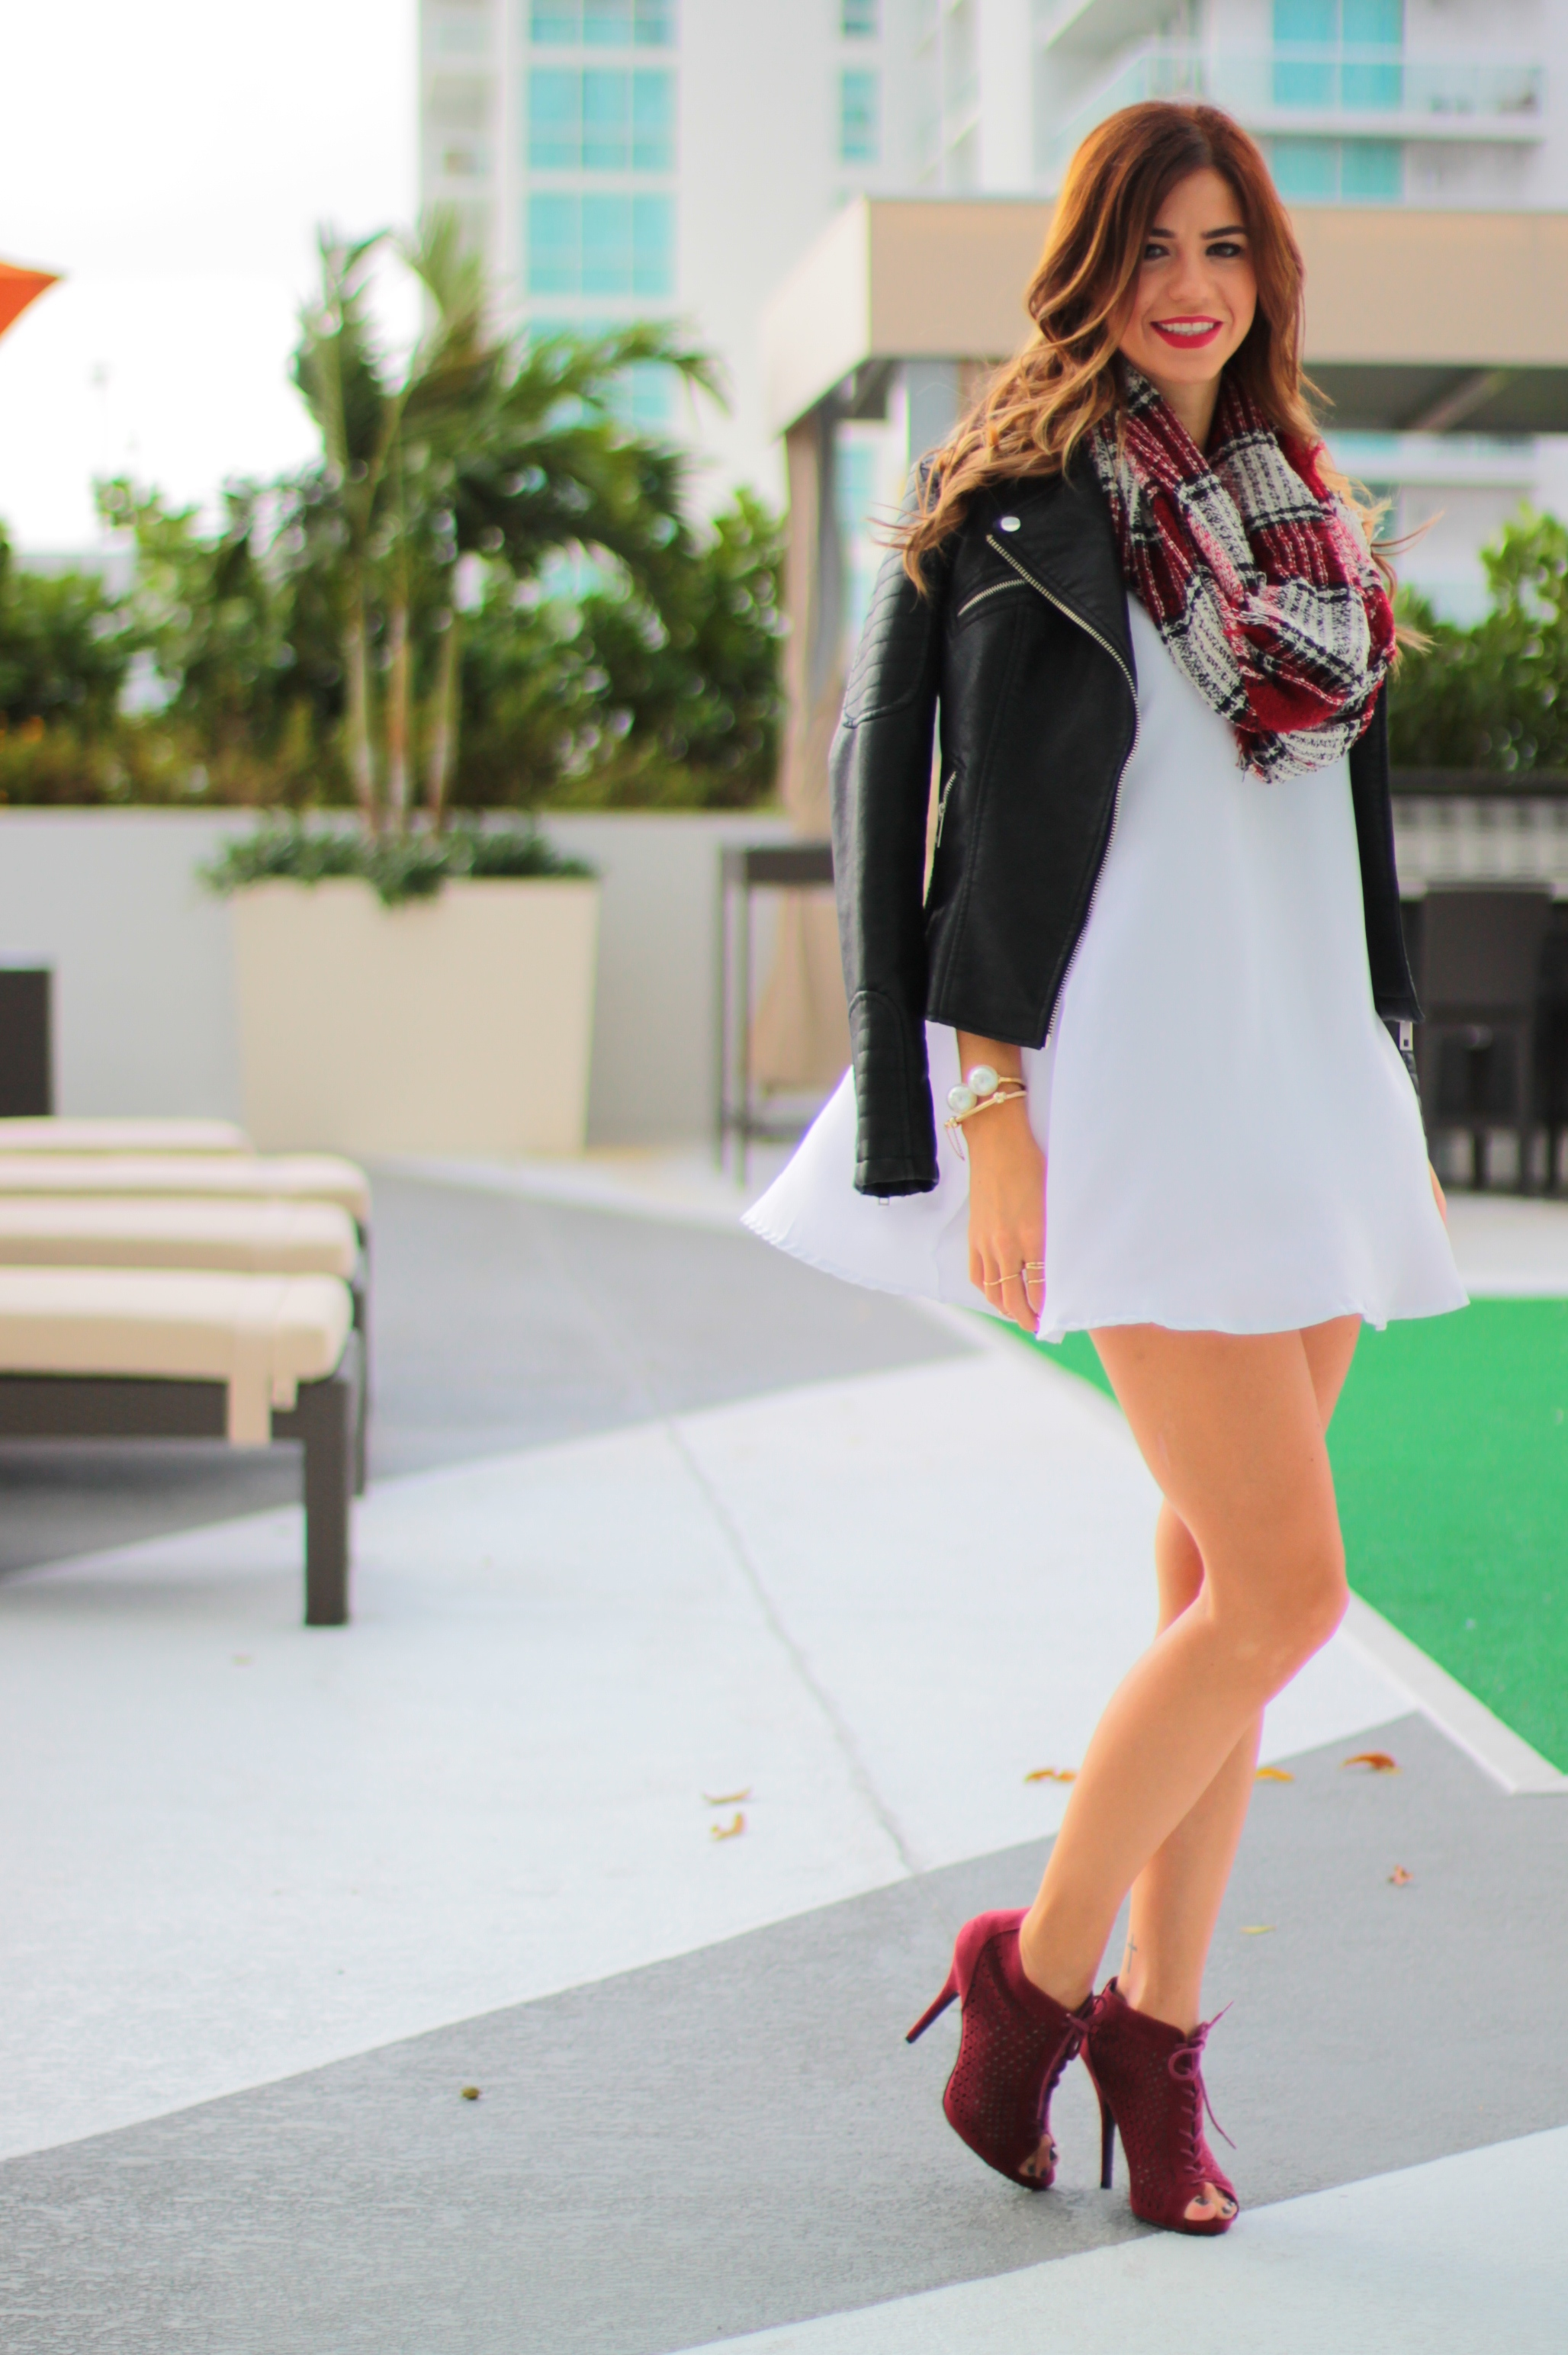 amanda tur, a fancy affair blog, street fashion, miami blogger, blog, fashion blog, zara, motto jacket, white dress, fall 2014